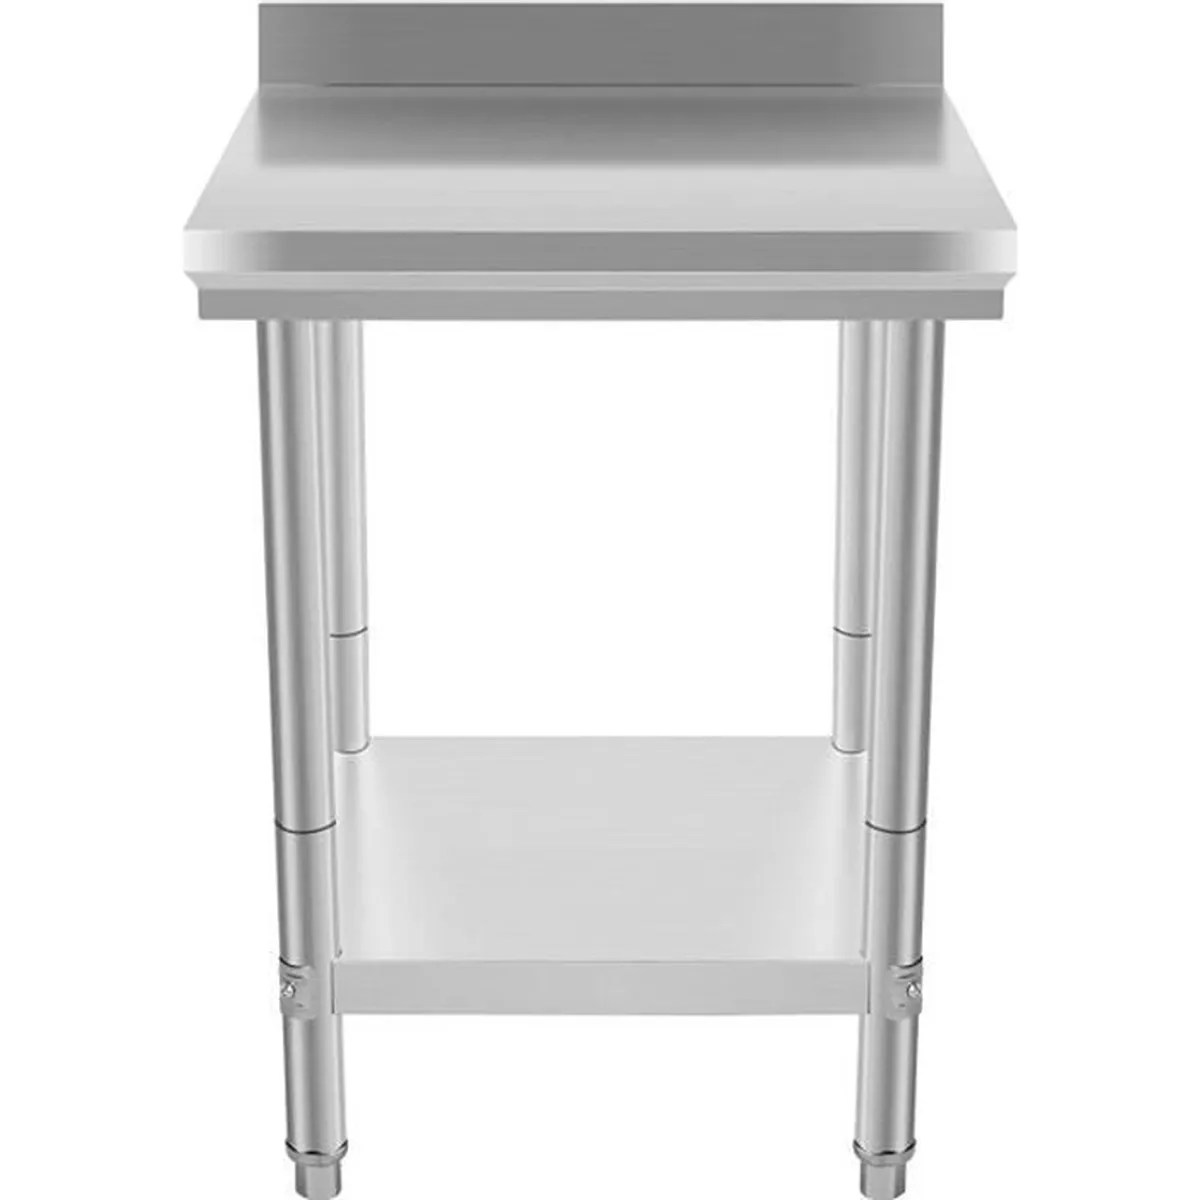 Etagere Inox Professionnel Occasion Etagere Bar Professionnel